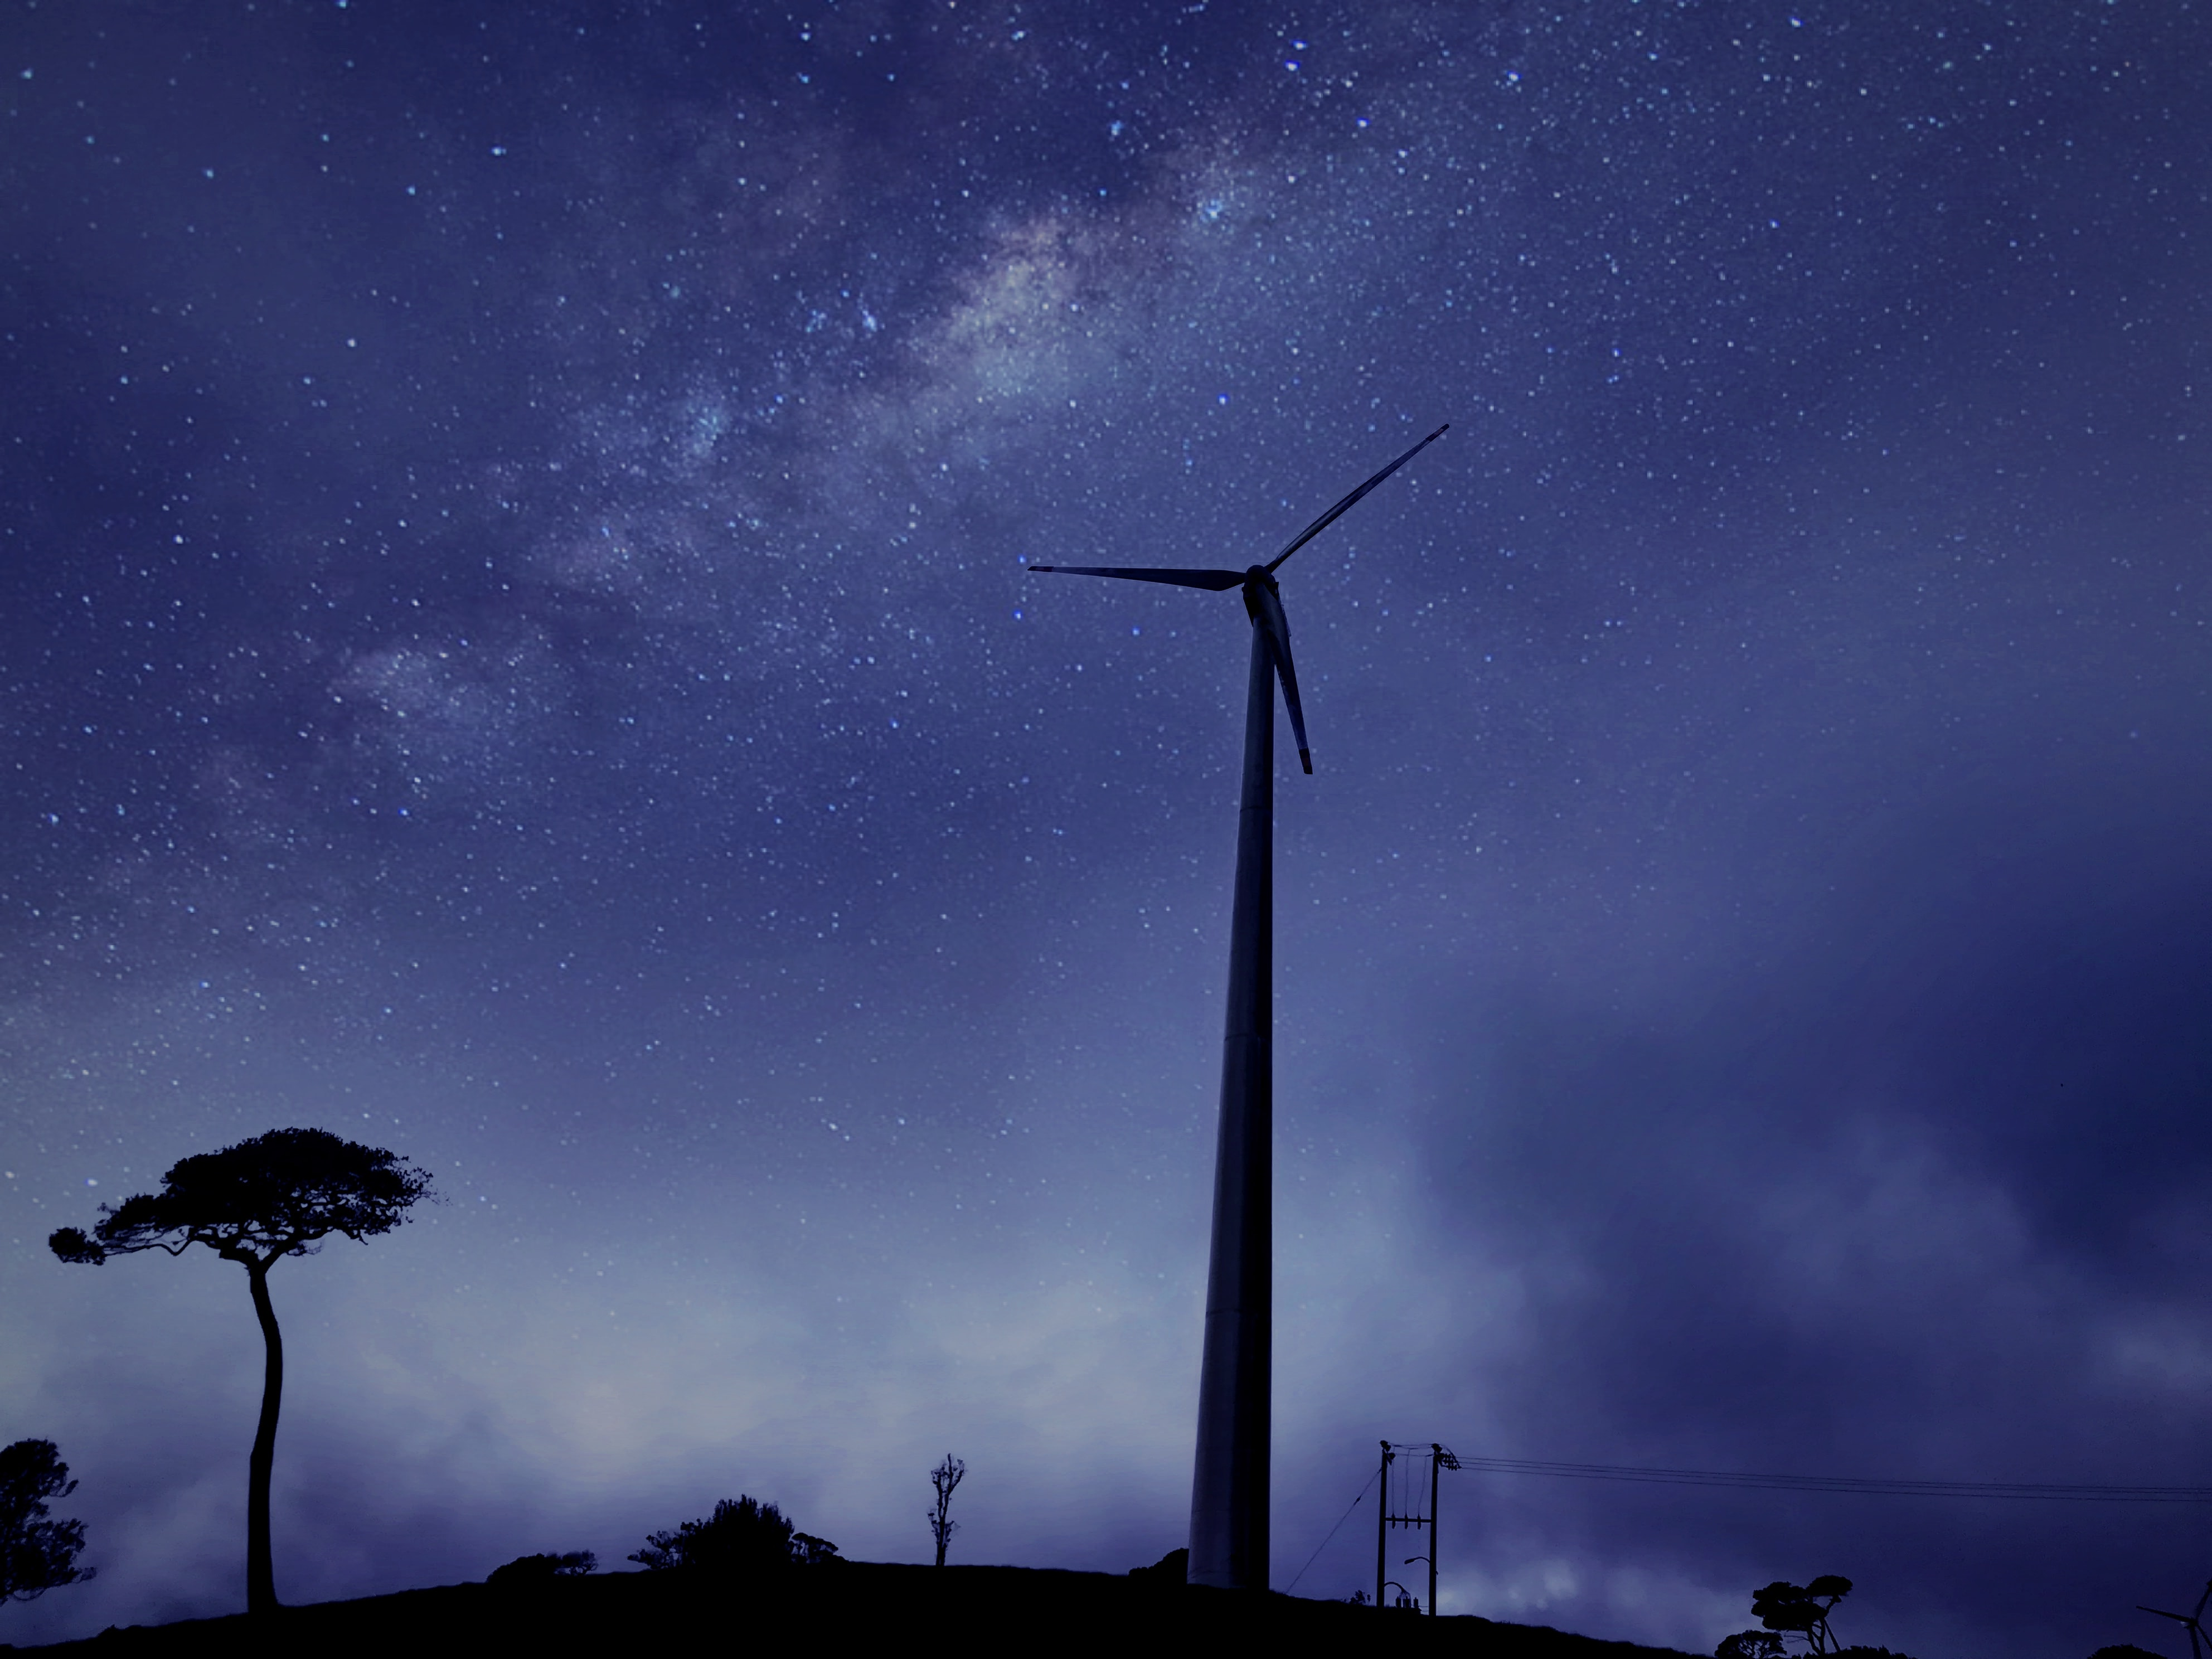 Milky Way photography above windmill